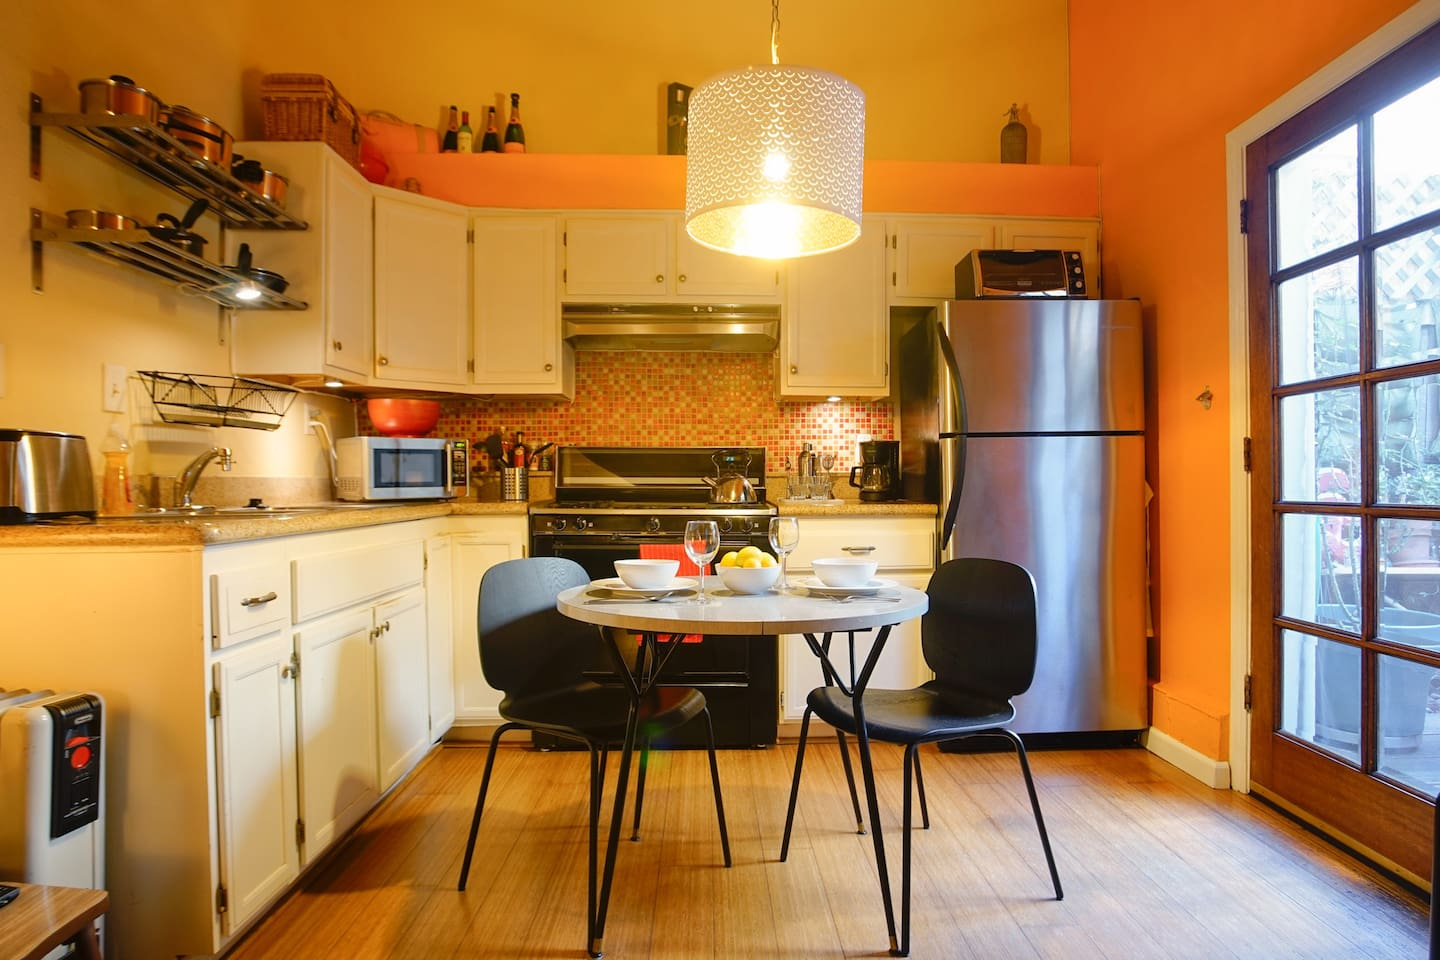 The kitchen is fully equipped with microwave, coffee maker, toaster, stove, and fridge.  Everything you need to cook and serve a full meal.  We have replaced the table with a white table that is slightly larger.